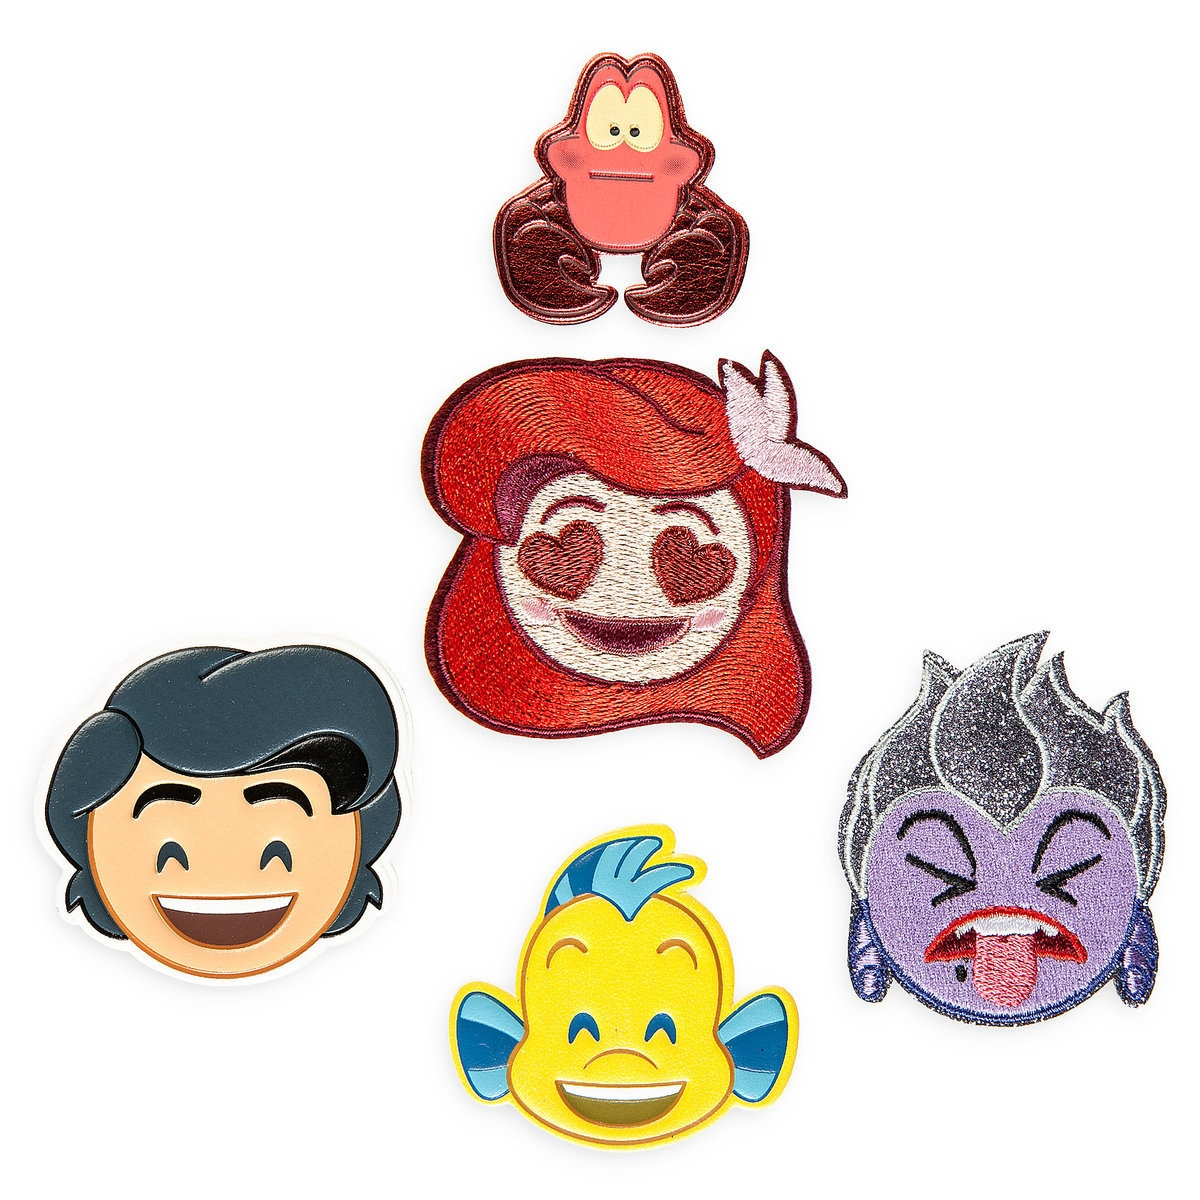 Ariel and Prince Eric Emoji Fleece Blanket Disney Emoji Disney